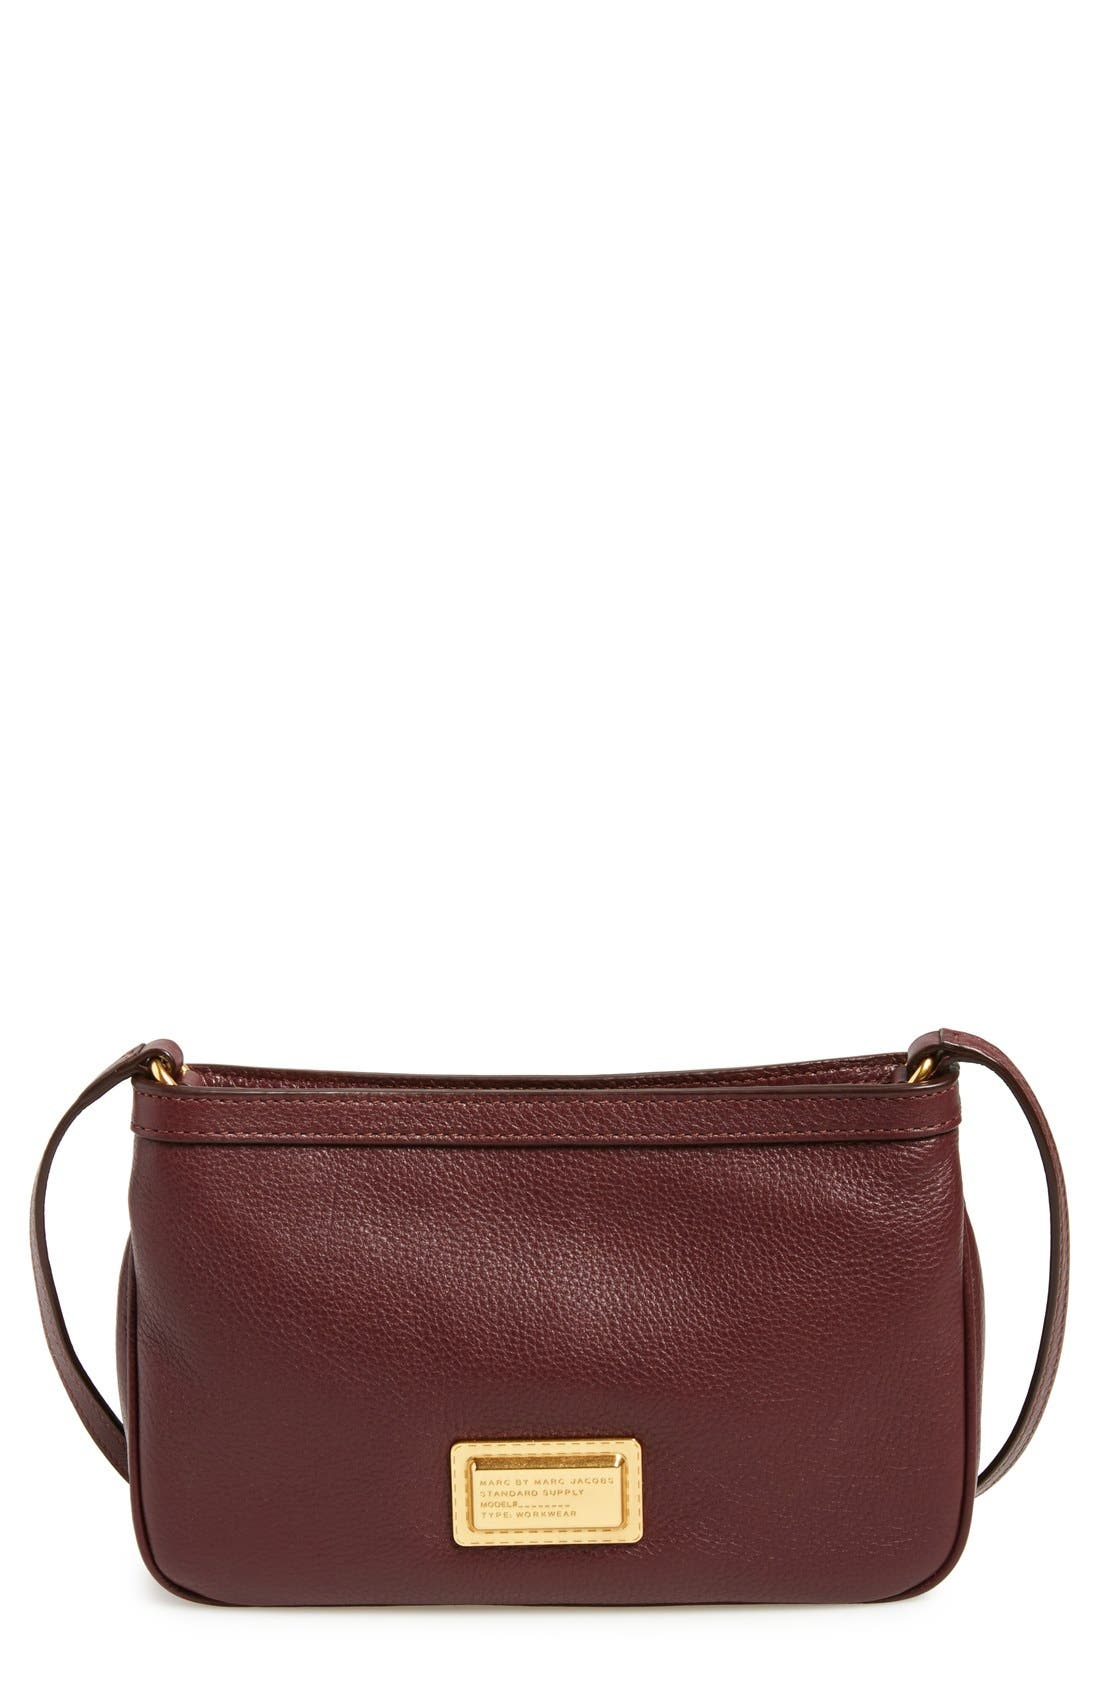 MARC BY MARC JACOBS 'Take Your Marc - Percy' Crossbody Bag,                             Main thumbnail 2, color,